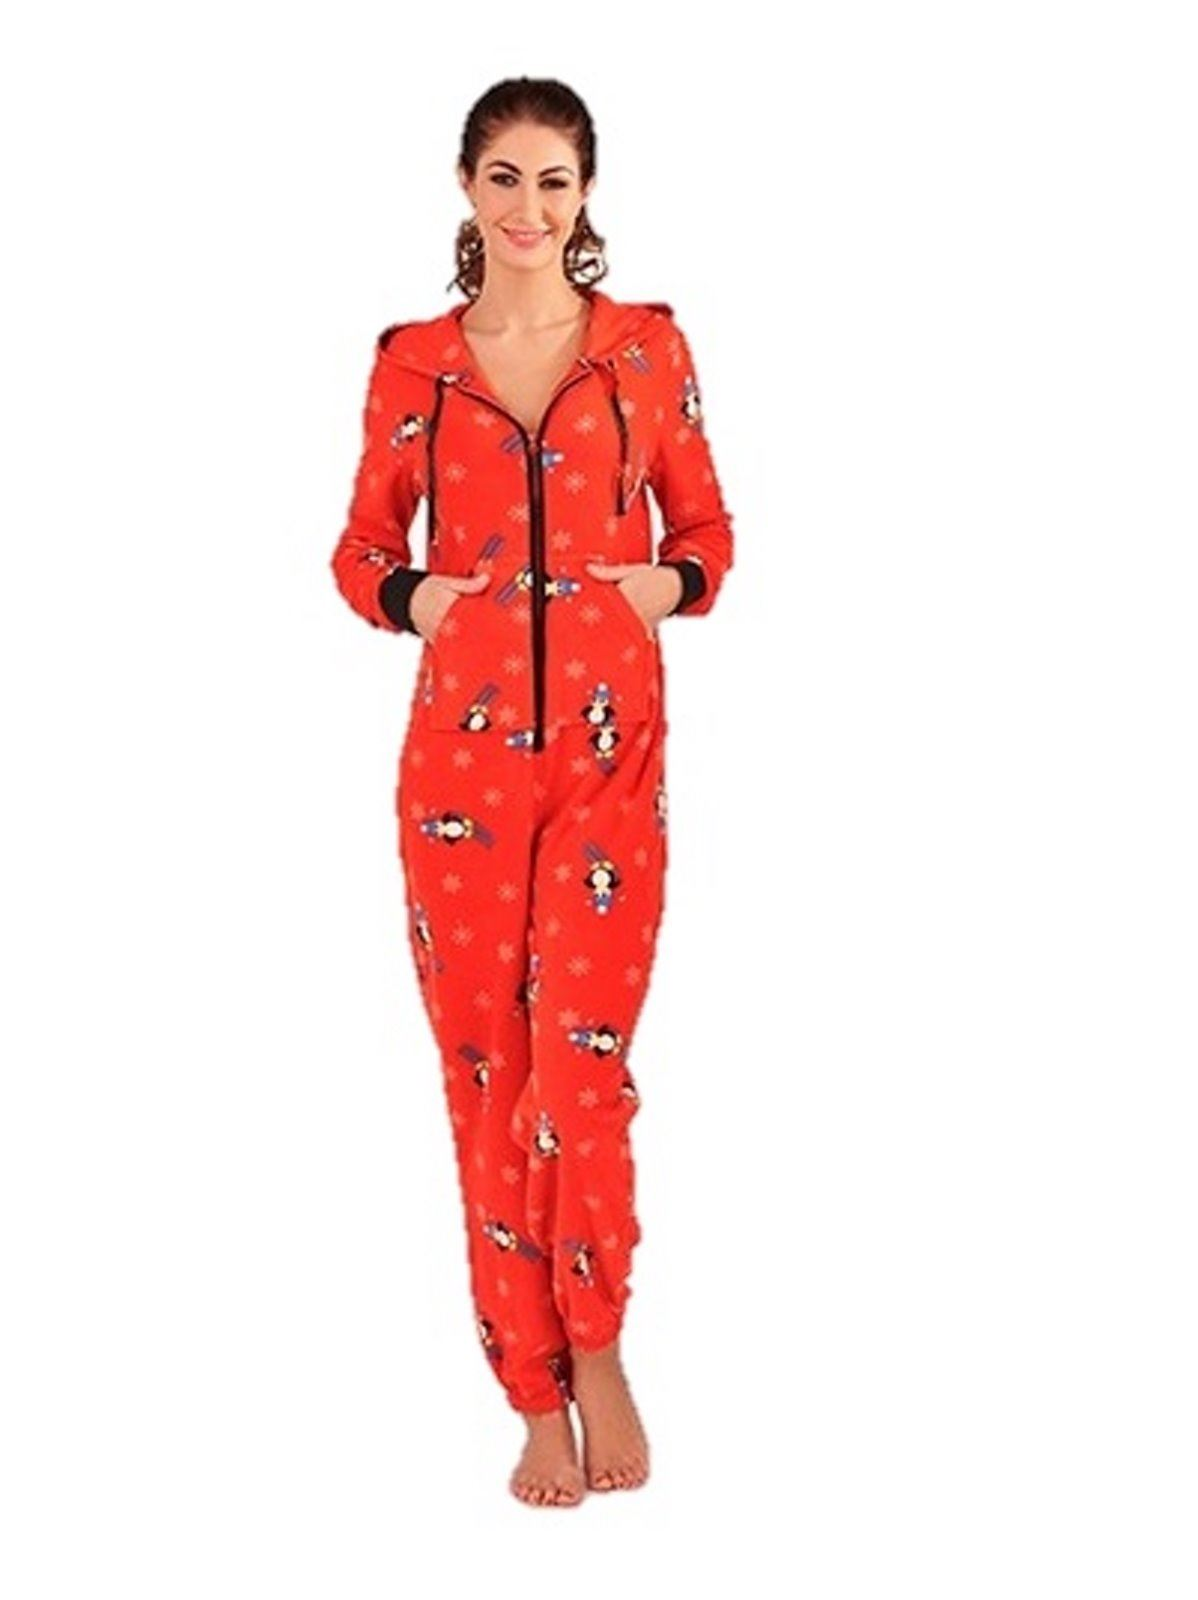 damen fleece einteiler onesie kapuzen fleece schlafanzug pinguin ebay. Black Bedroom Furniture Sets. Home Design Ideas